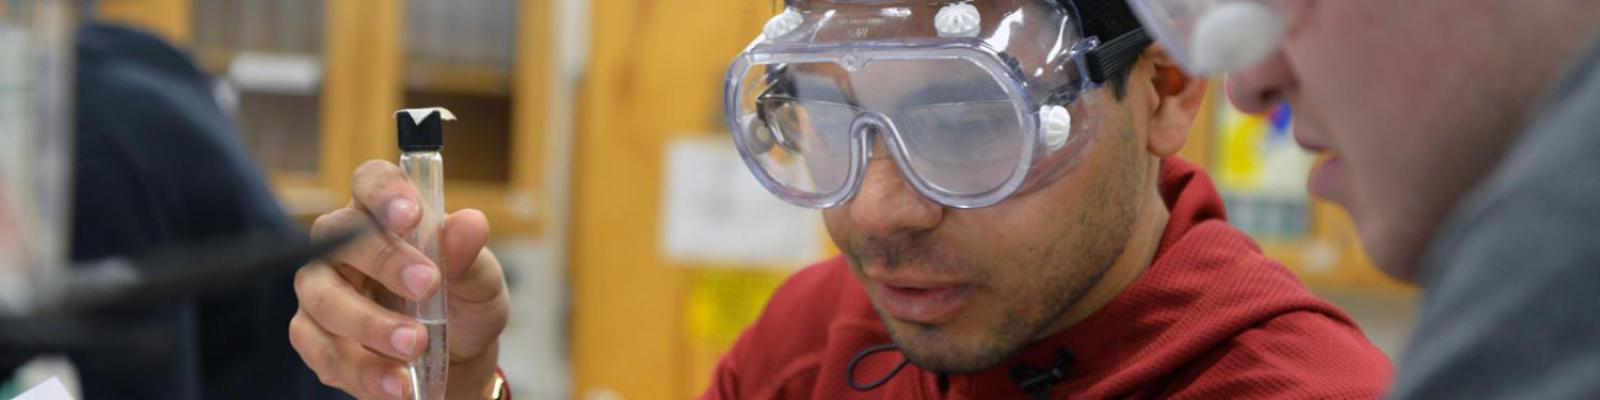 student wearing goggles performing chemistry experiment